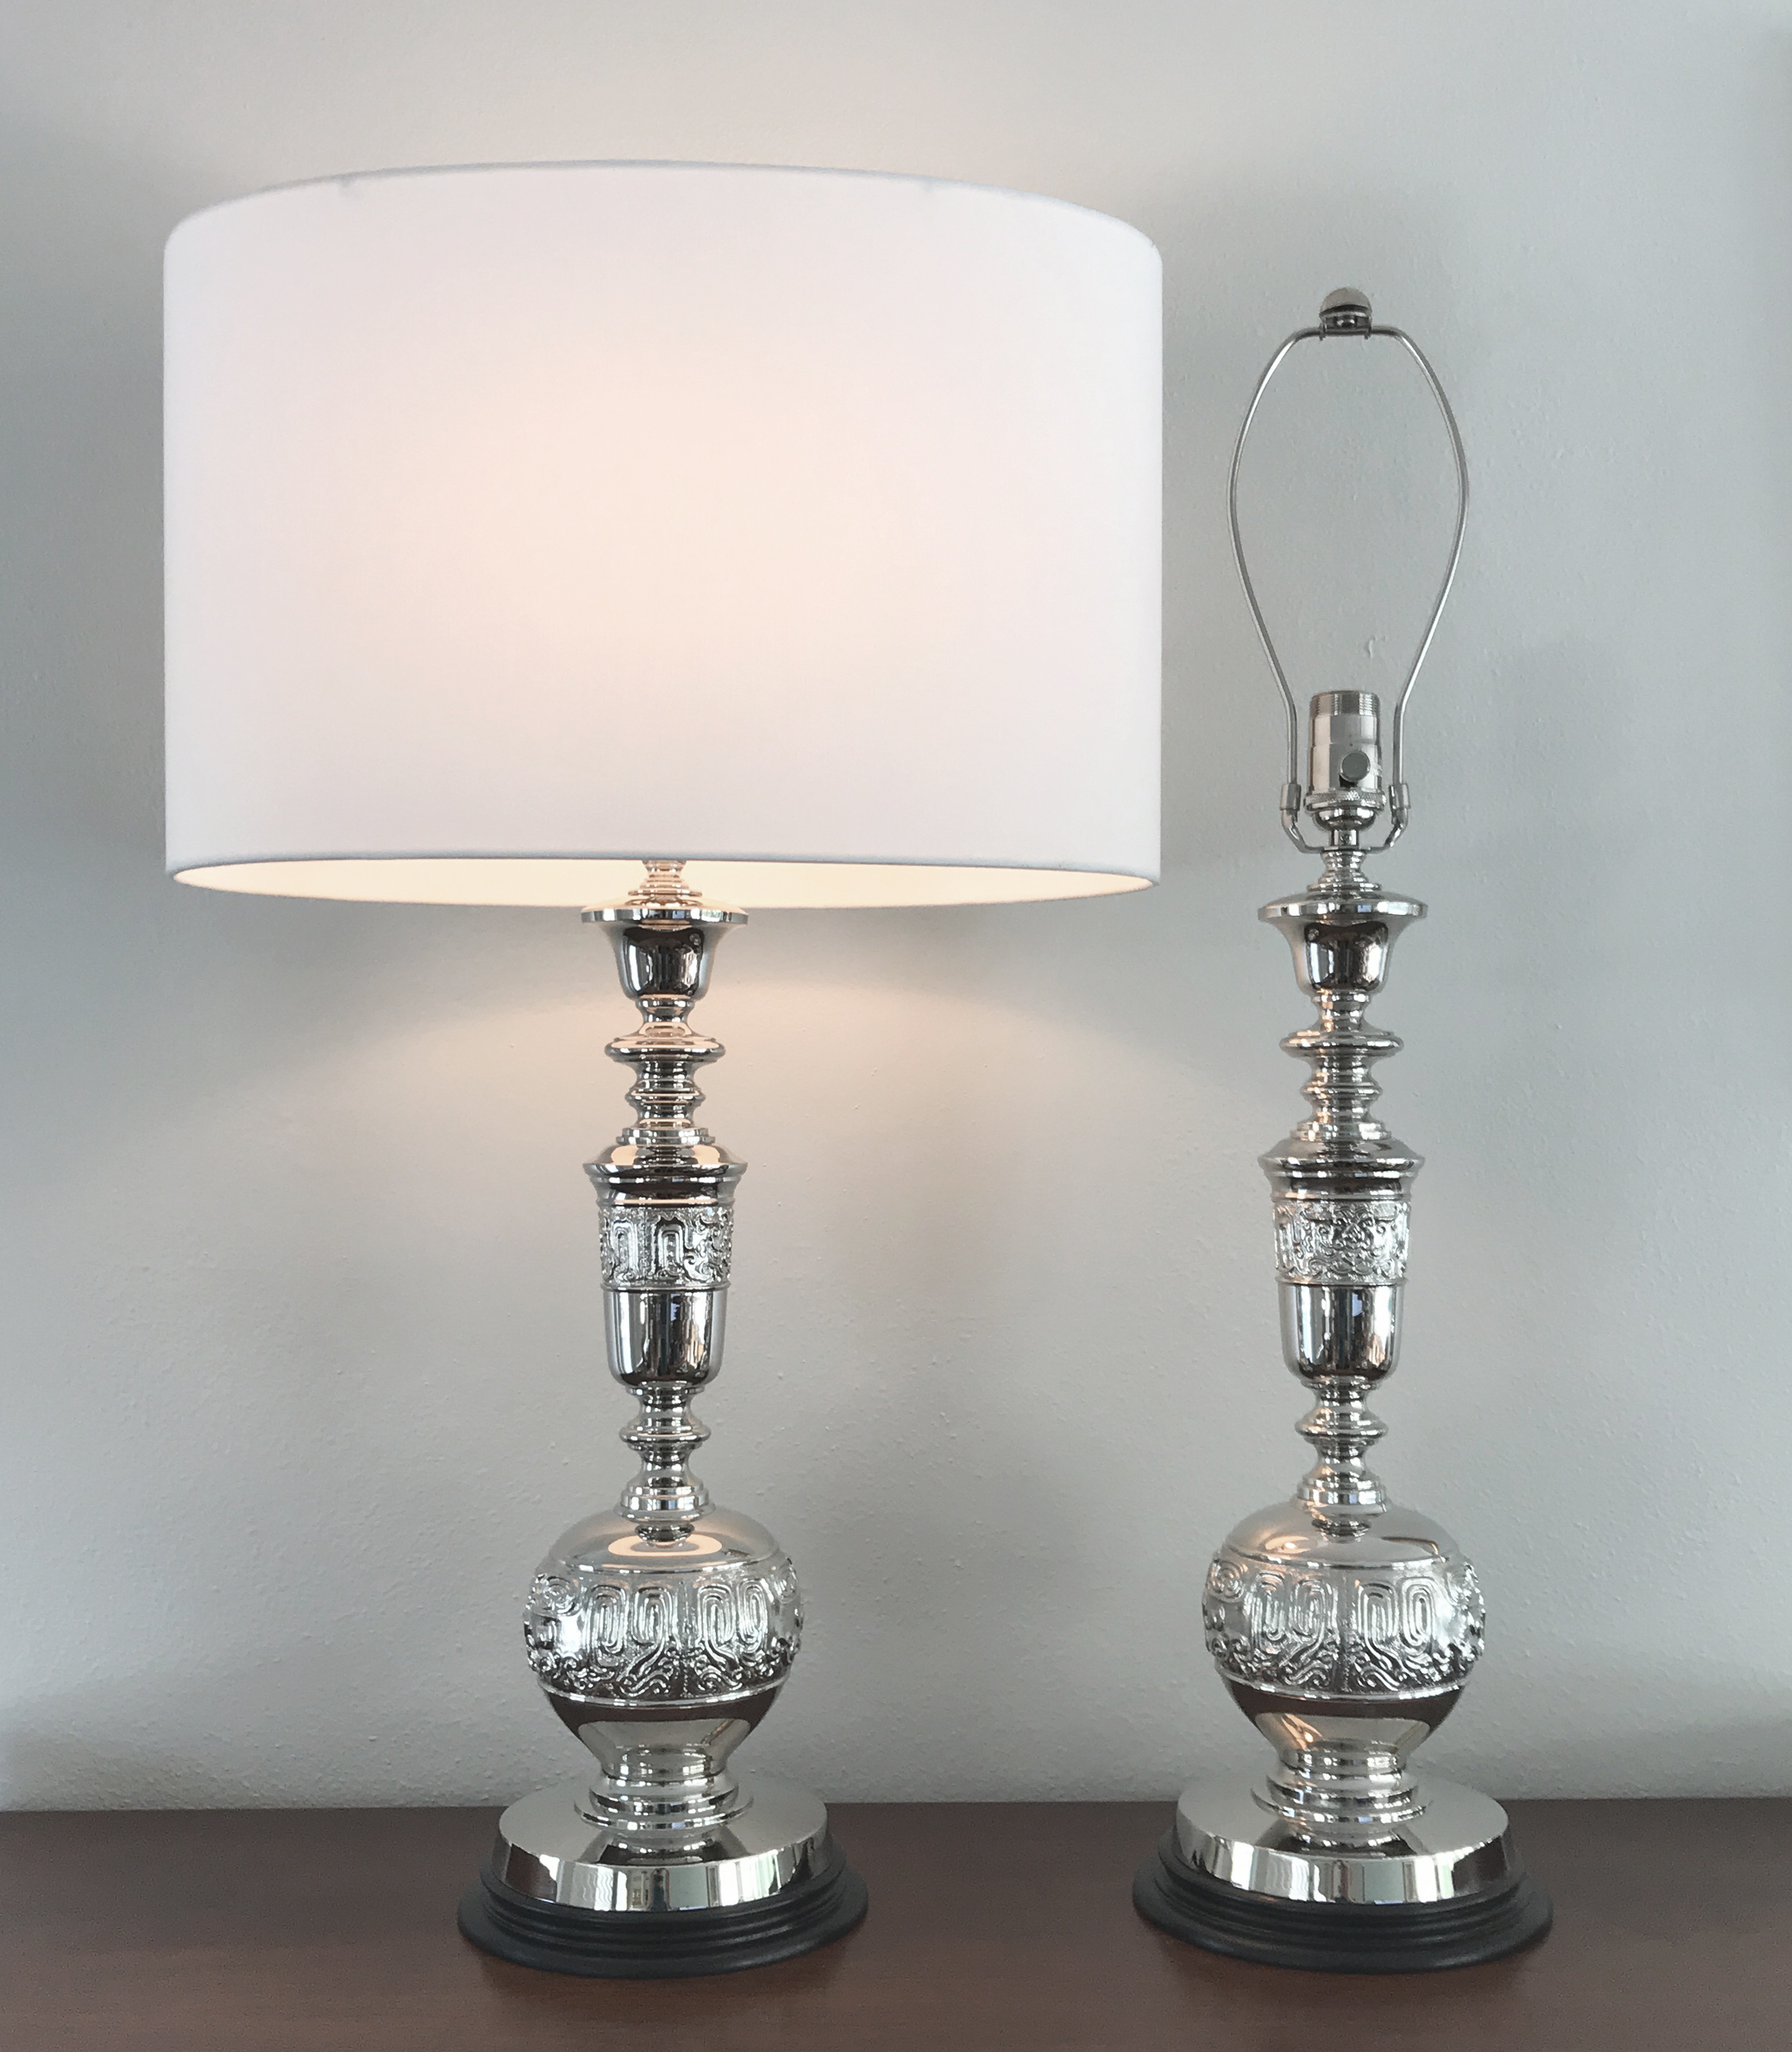 Polished Nickel Urn Table Lamps (pair)  Espresso stained wood bases with polished nickel plated cast brass bodies.  Full range dimmer on socket with black silk cord.  Shown with a white linen, oval shade.